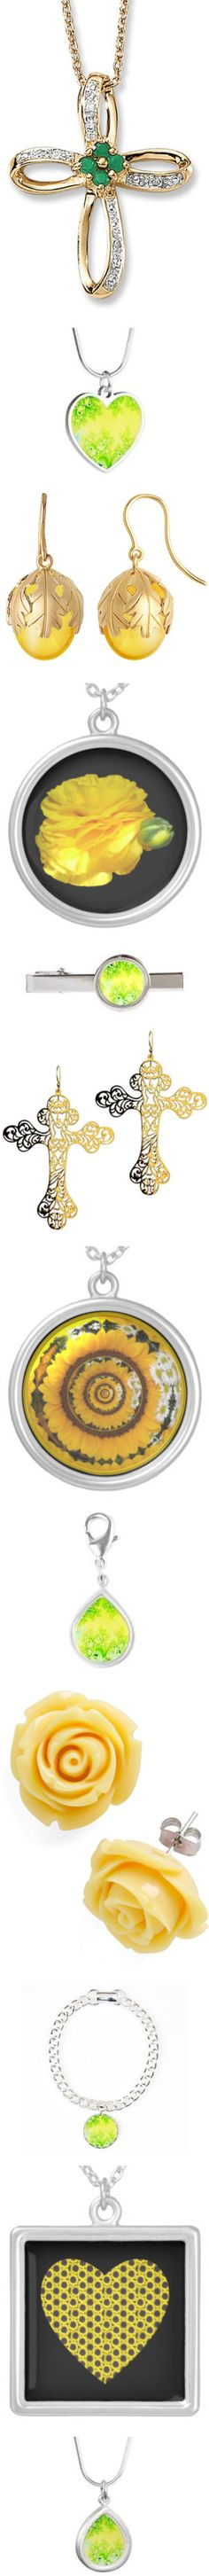 * #JEWELRY: #YELLOW & #GREEN * by artist4god-rose-santuci-sofranko on Polyvore featuring polyvore, fashion, jewelry, pendants, cross charms, sterling silver stone jewelry, sterling silver cross charm, stone jewellery, diamond accent jewelry, necklaces, silver heart shaped necklace, yellow jewelry, silver jewellery, heart necklace, silver jewelry, earrings, yellow, round earrings, wire jewelry, long dangle earrings, long earrings, long wire earrings, gardening, natural, yellow necklace, home…